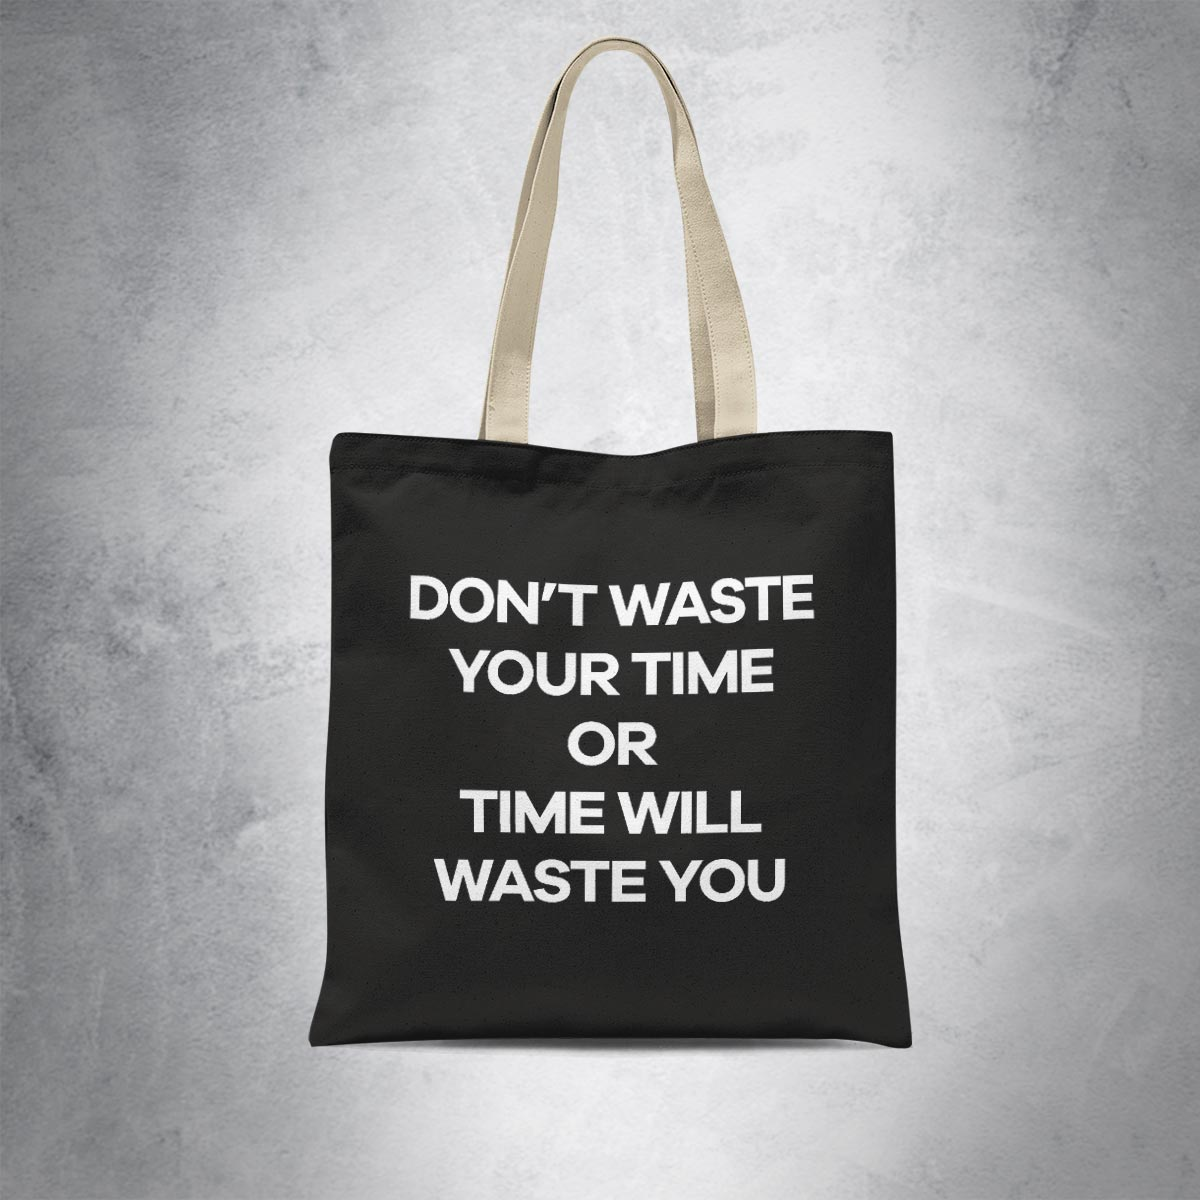 MUSE - Don't waste your time